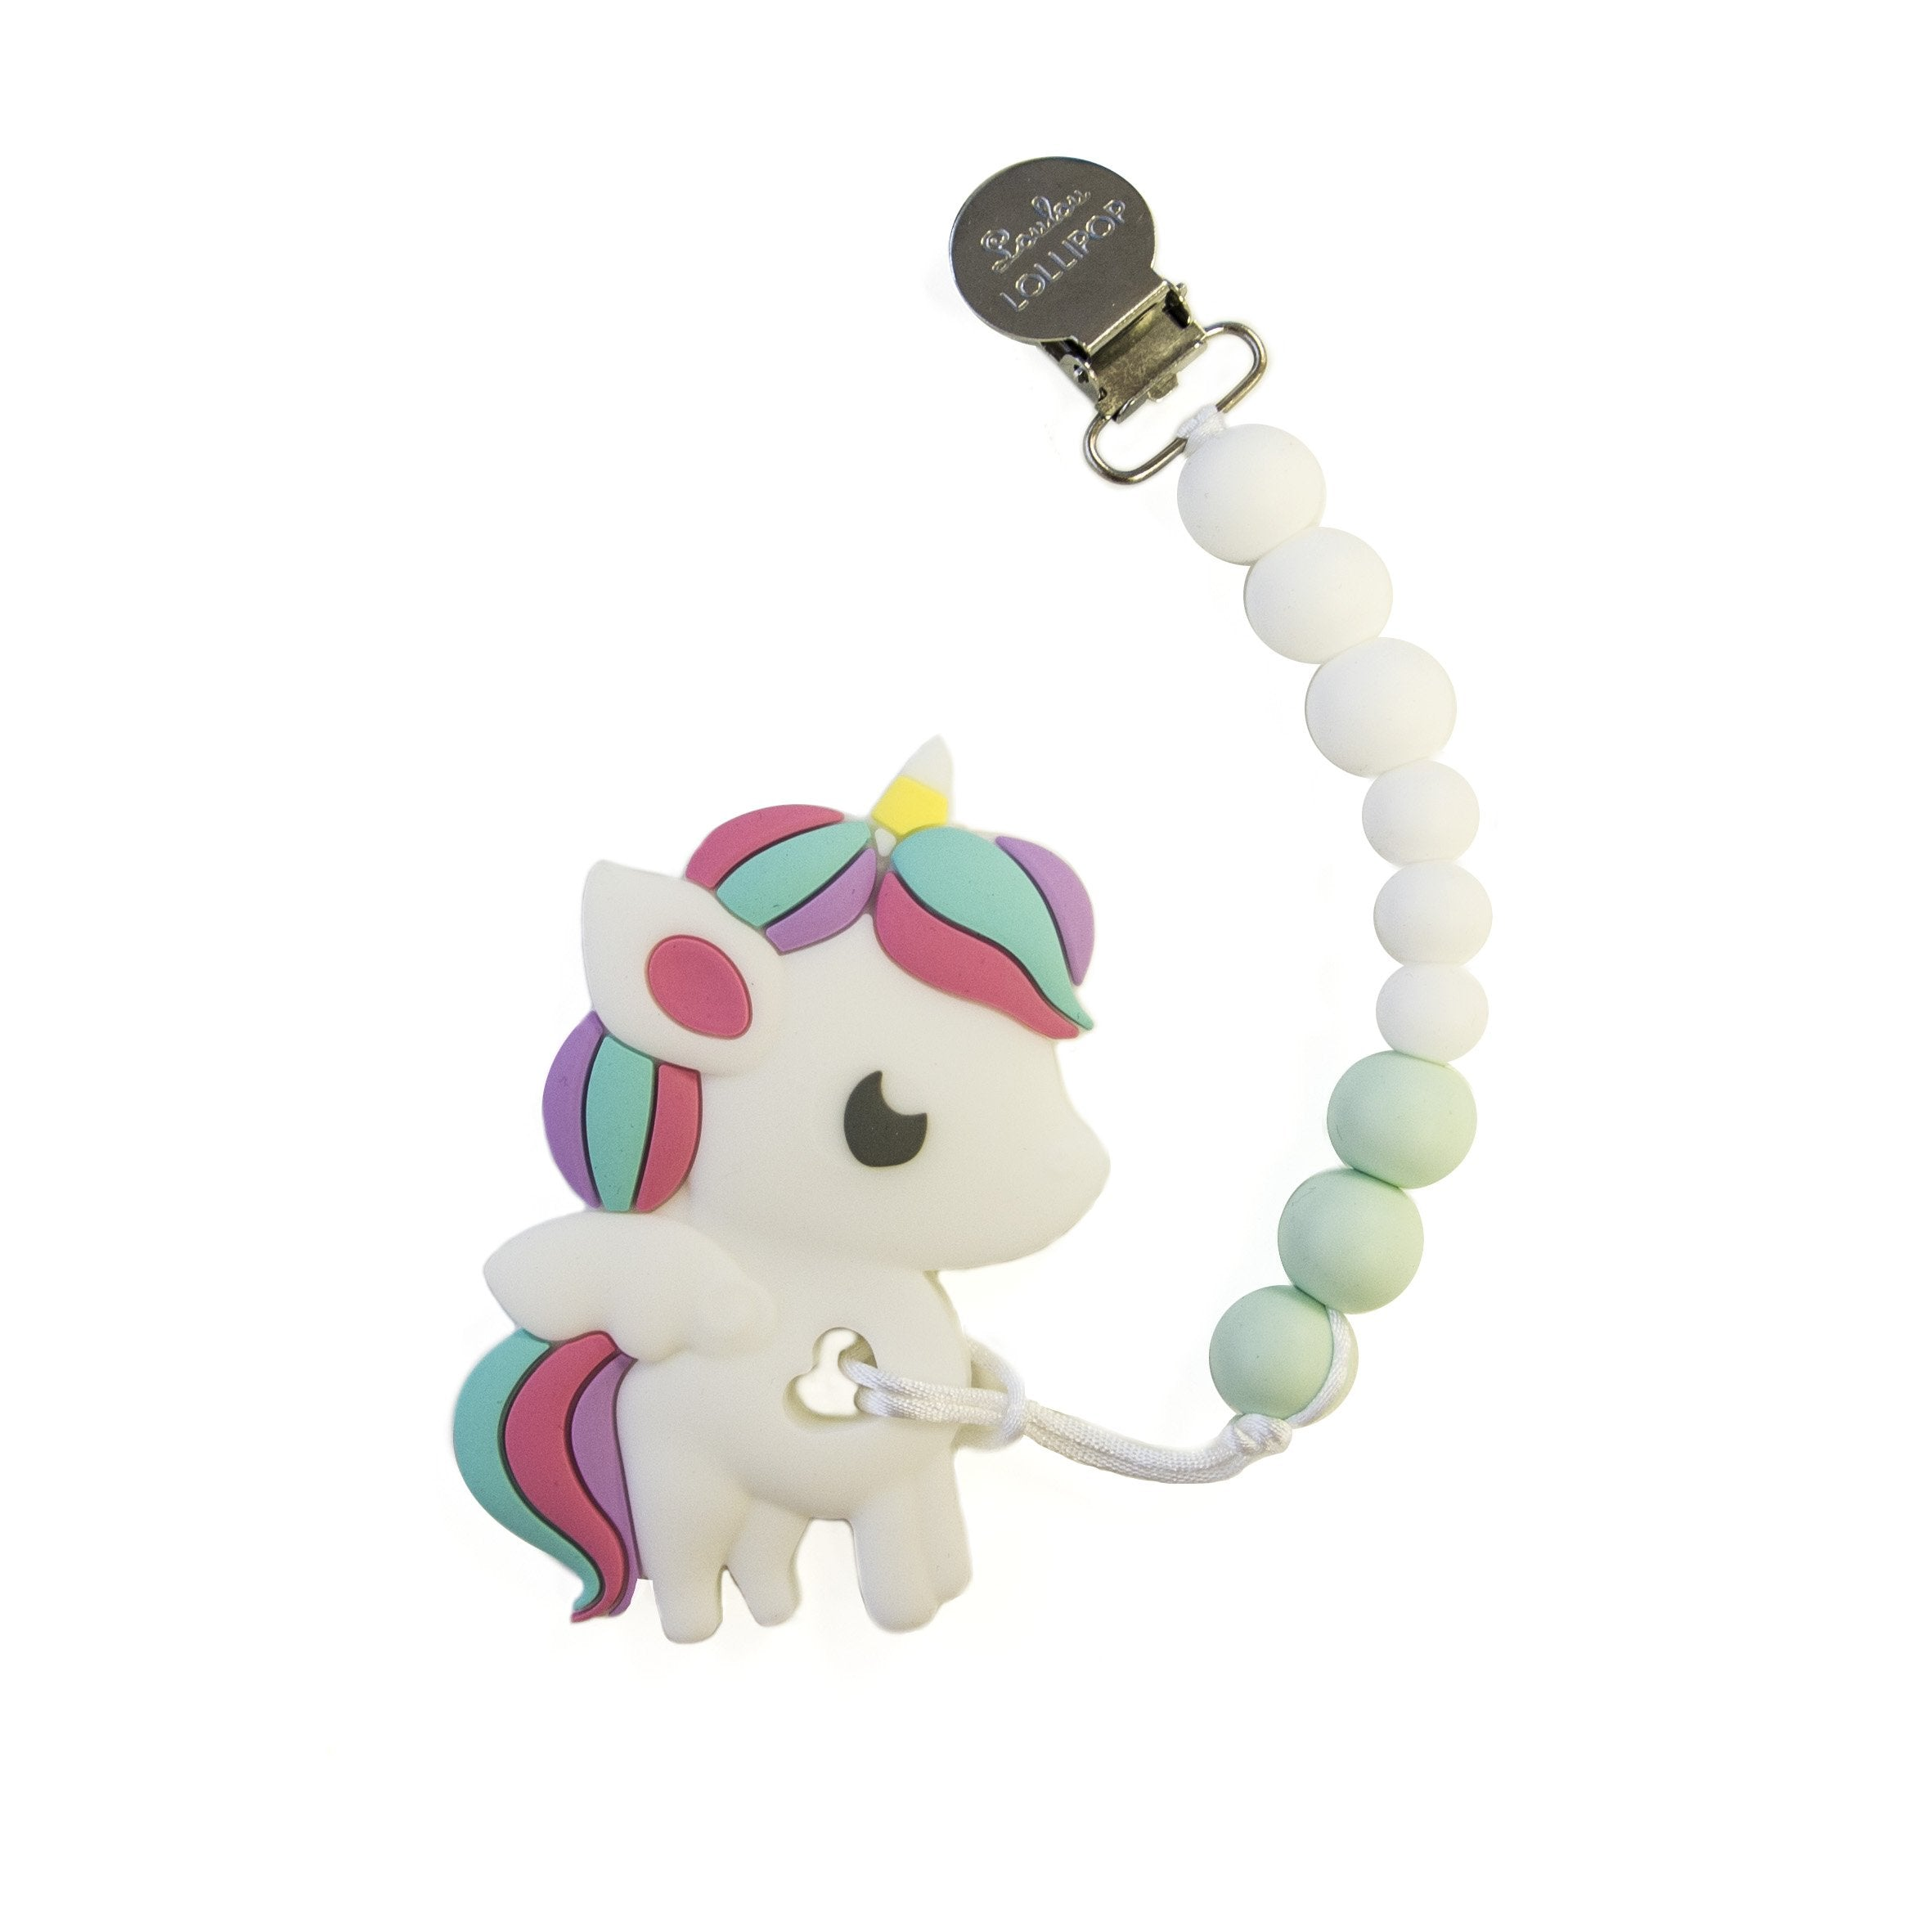 RAINBOW UNICORN SILICONE TEETHER HOLDER SET - WHITE MINT